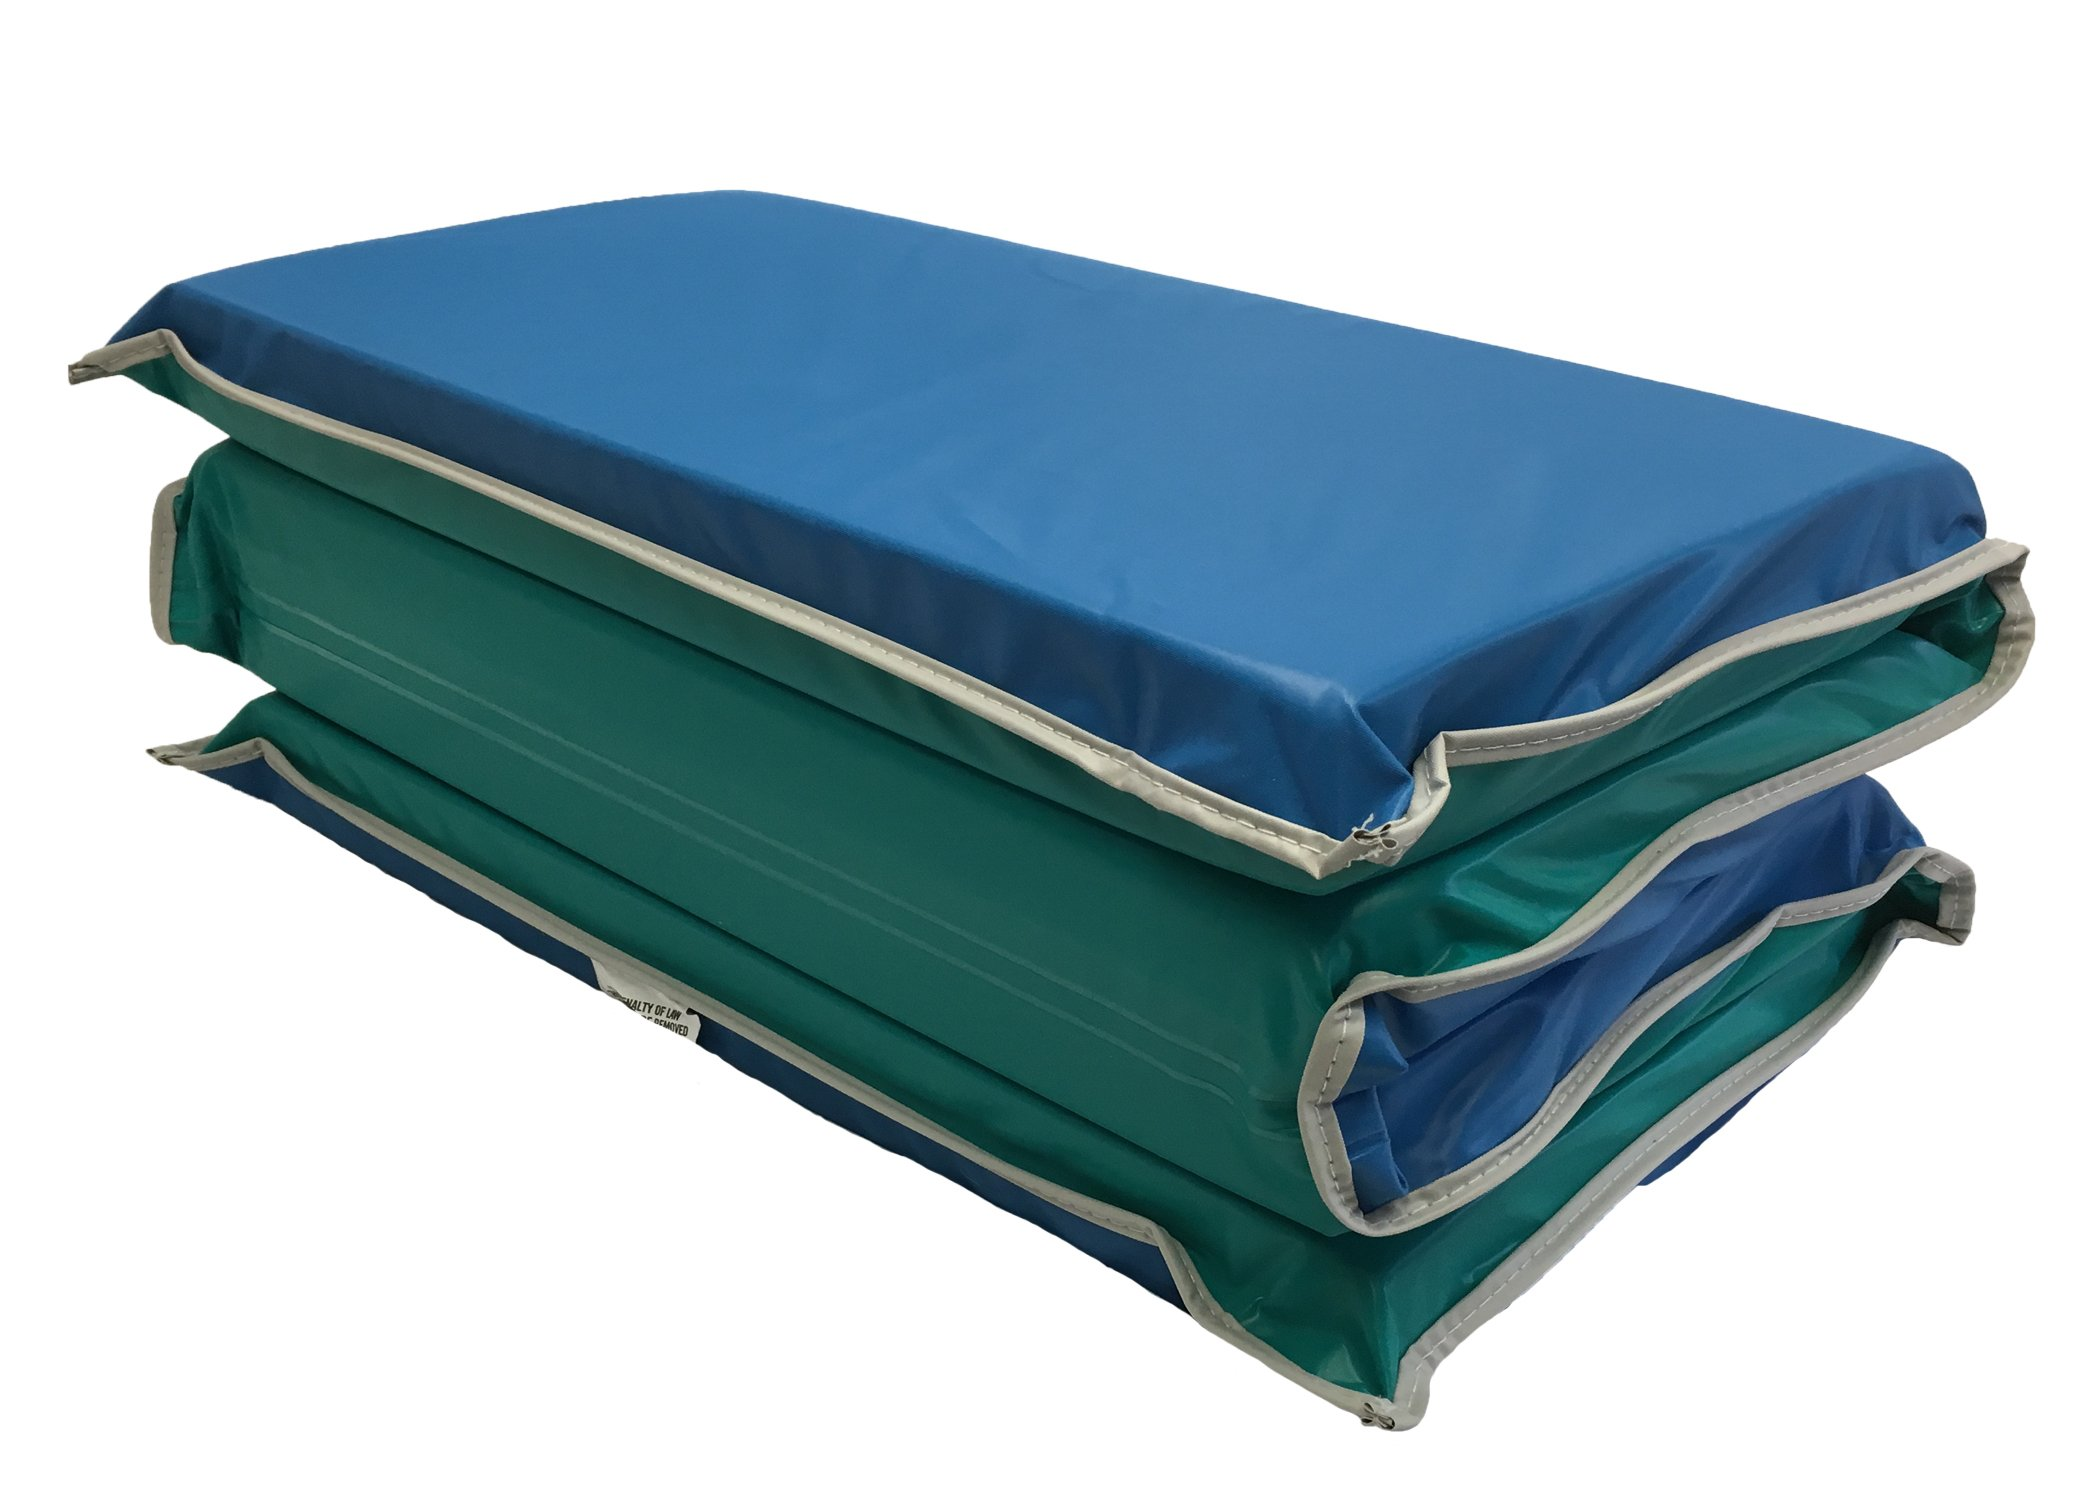 KinderMat Jr. Daydreamer Rest Mat, Gray Binding, 2 inches Thick, 44 x 19, Blue/Teal